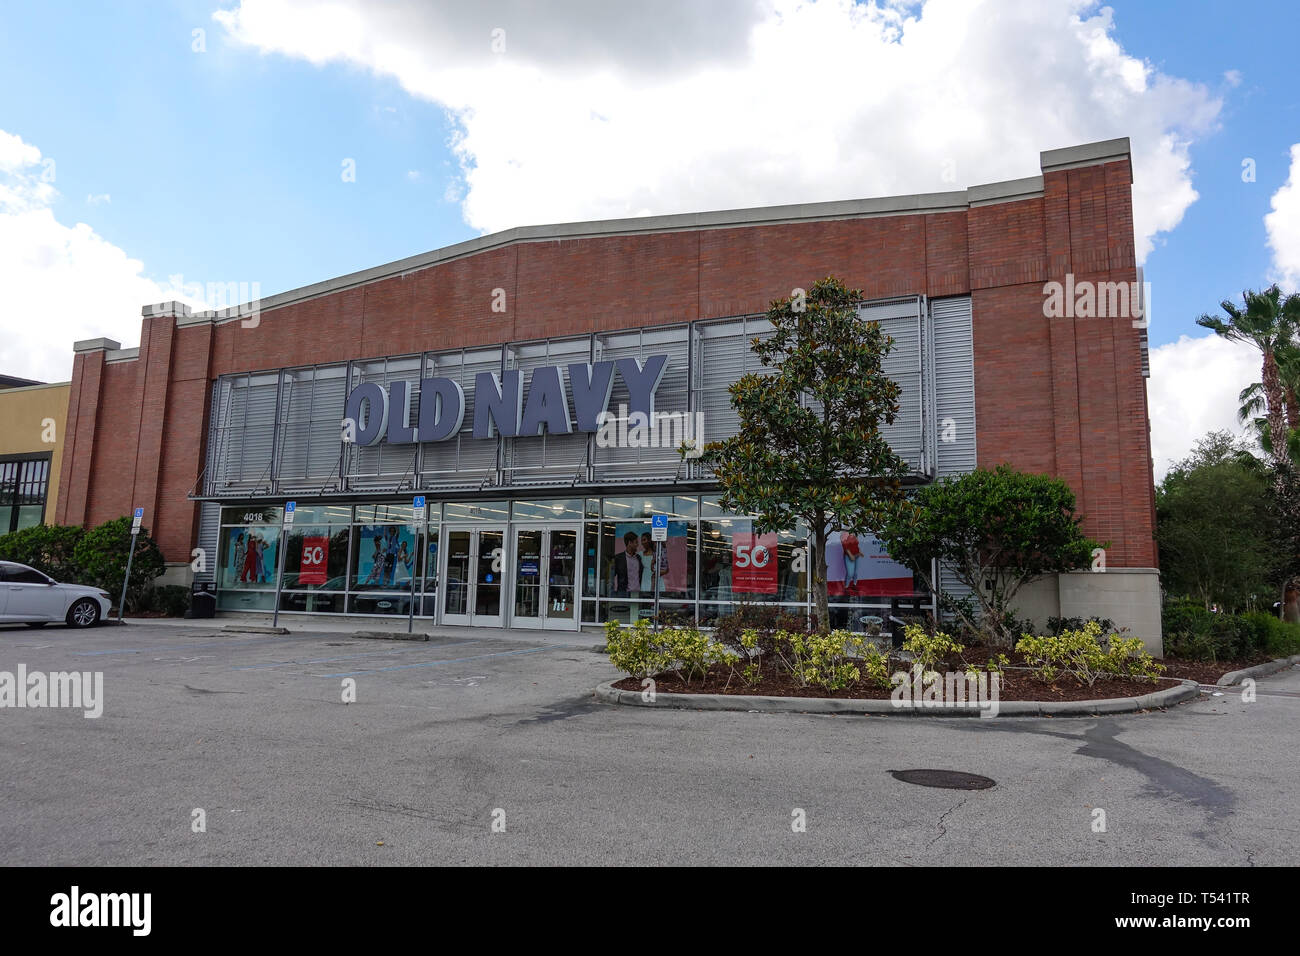 Orlando, FL/United States - 04/18/2019: Old Navy is an American clothing and accessories retailing company owned by American multinational corporation. Stock Photo